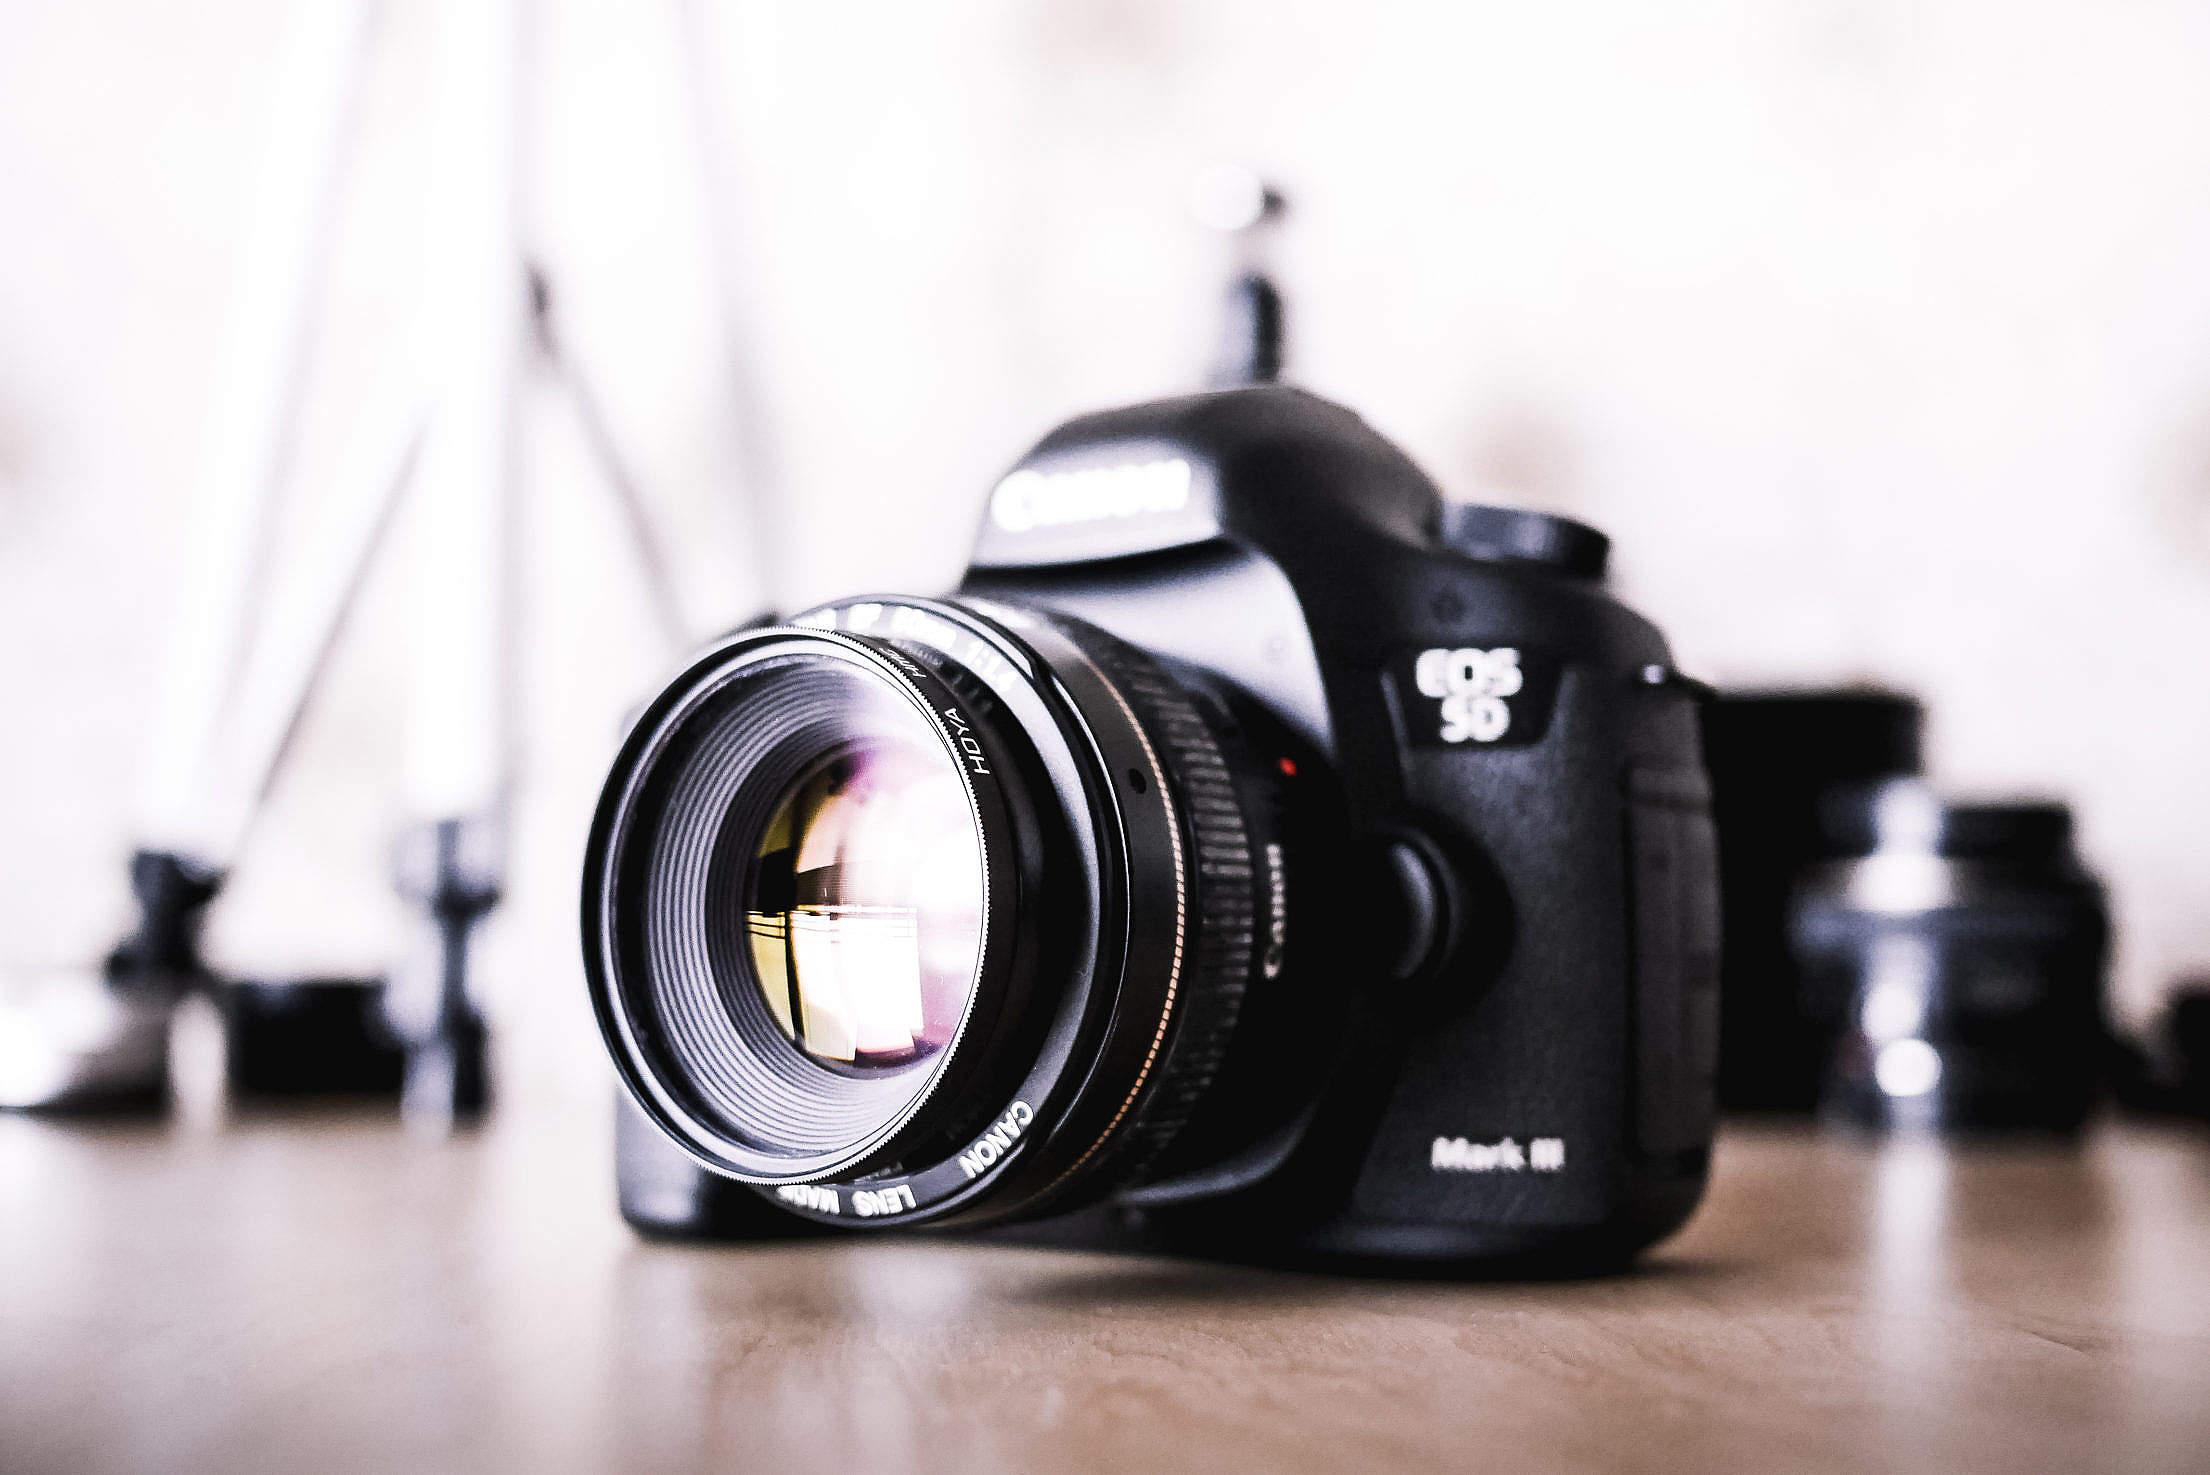 Download Big DSLR Camera and Equipment Free Stock Photo